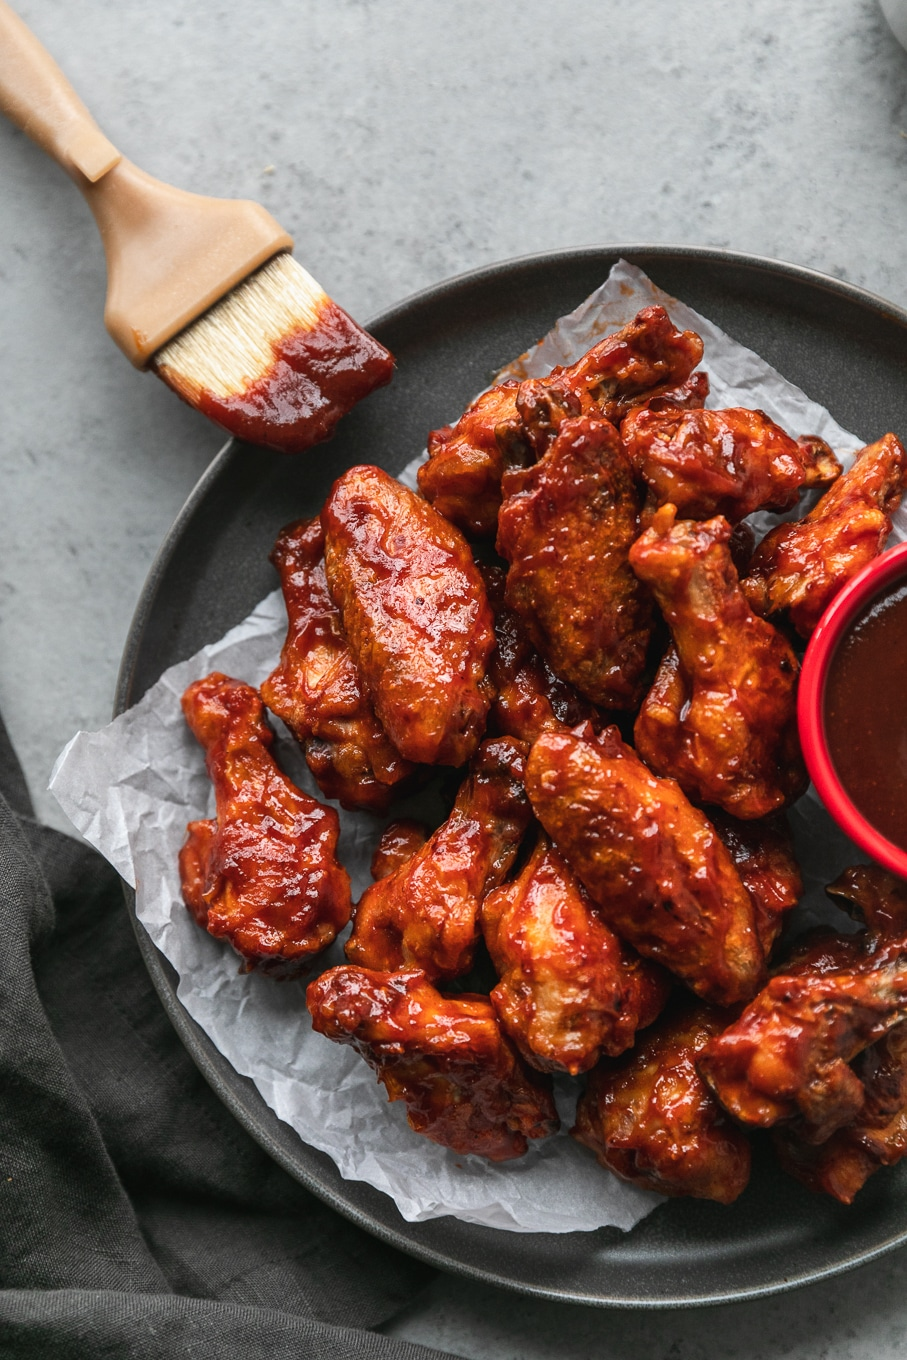 Overhead shot of a plate of BBQ wings with a pastry brush resting on the plate